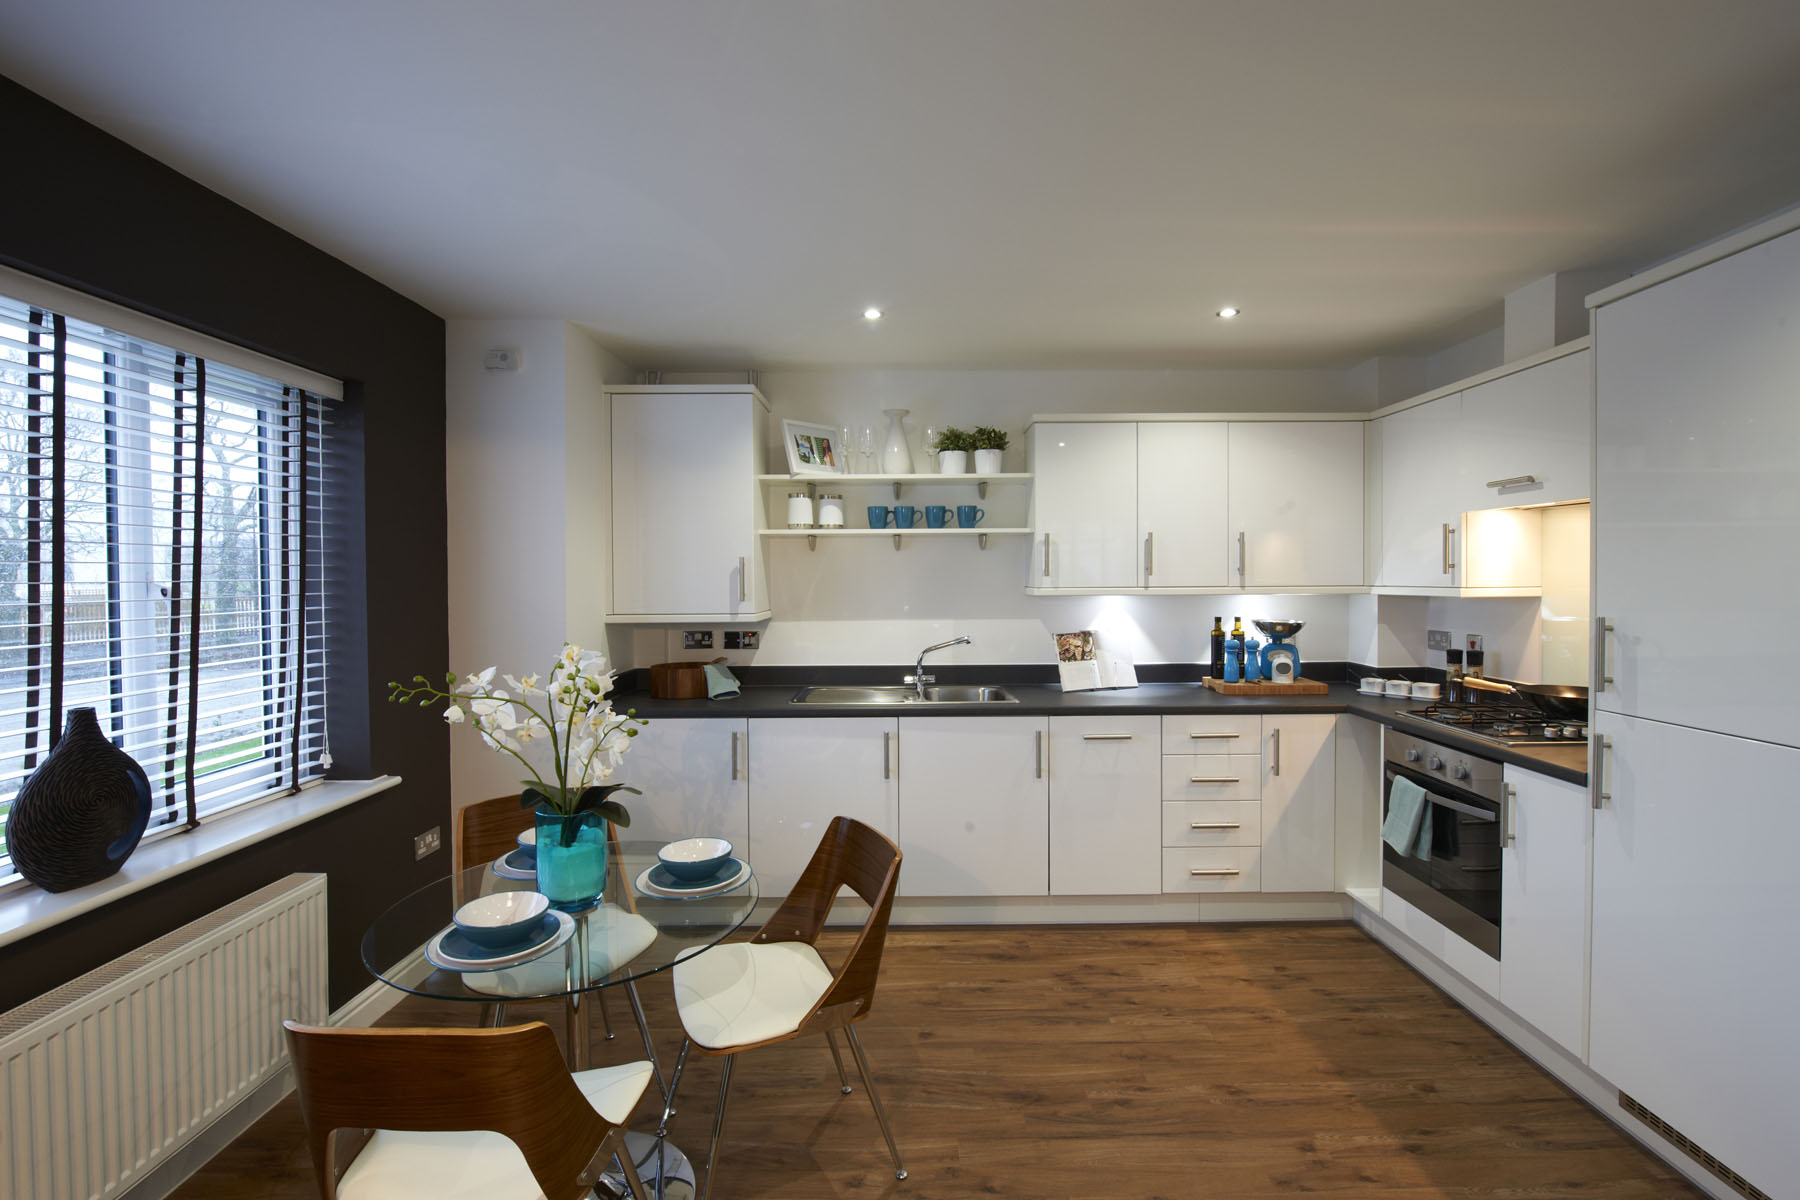 A typical Taylor Wimpey apartment kitchen/dining area